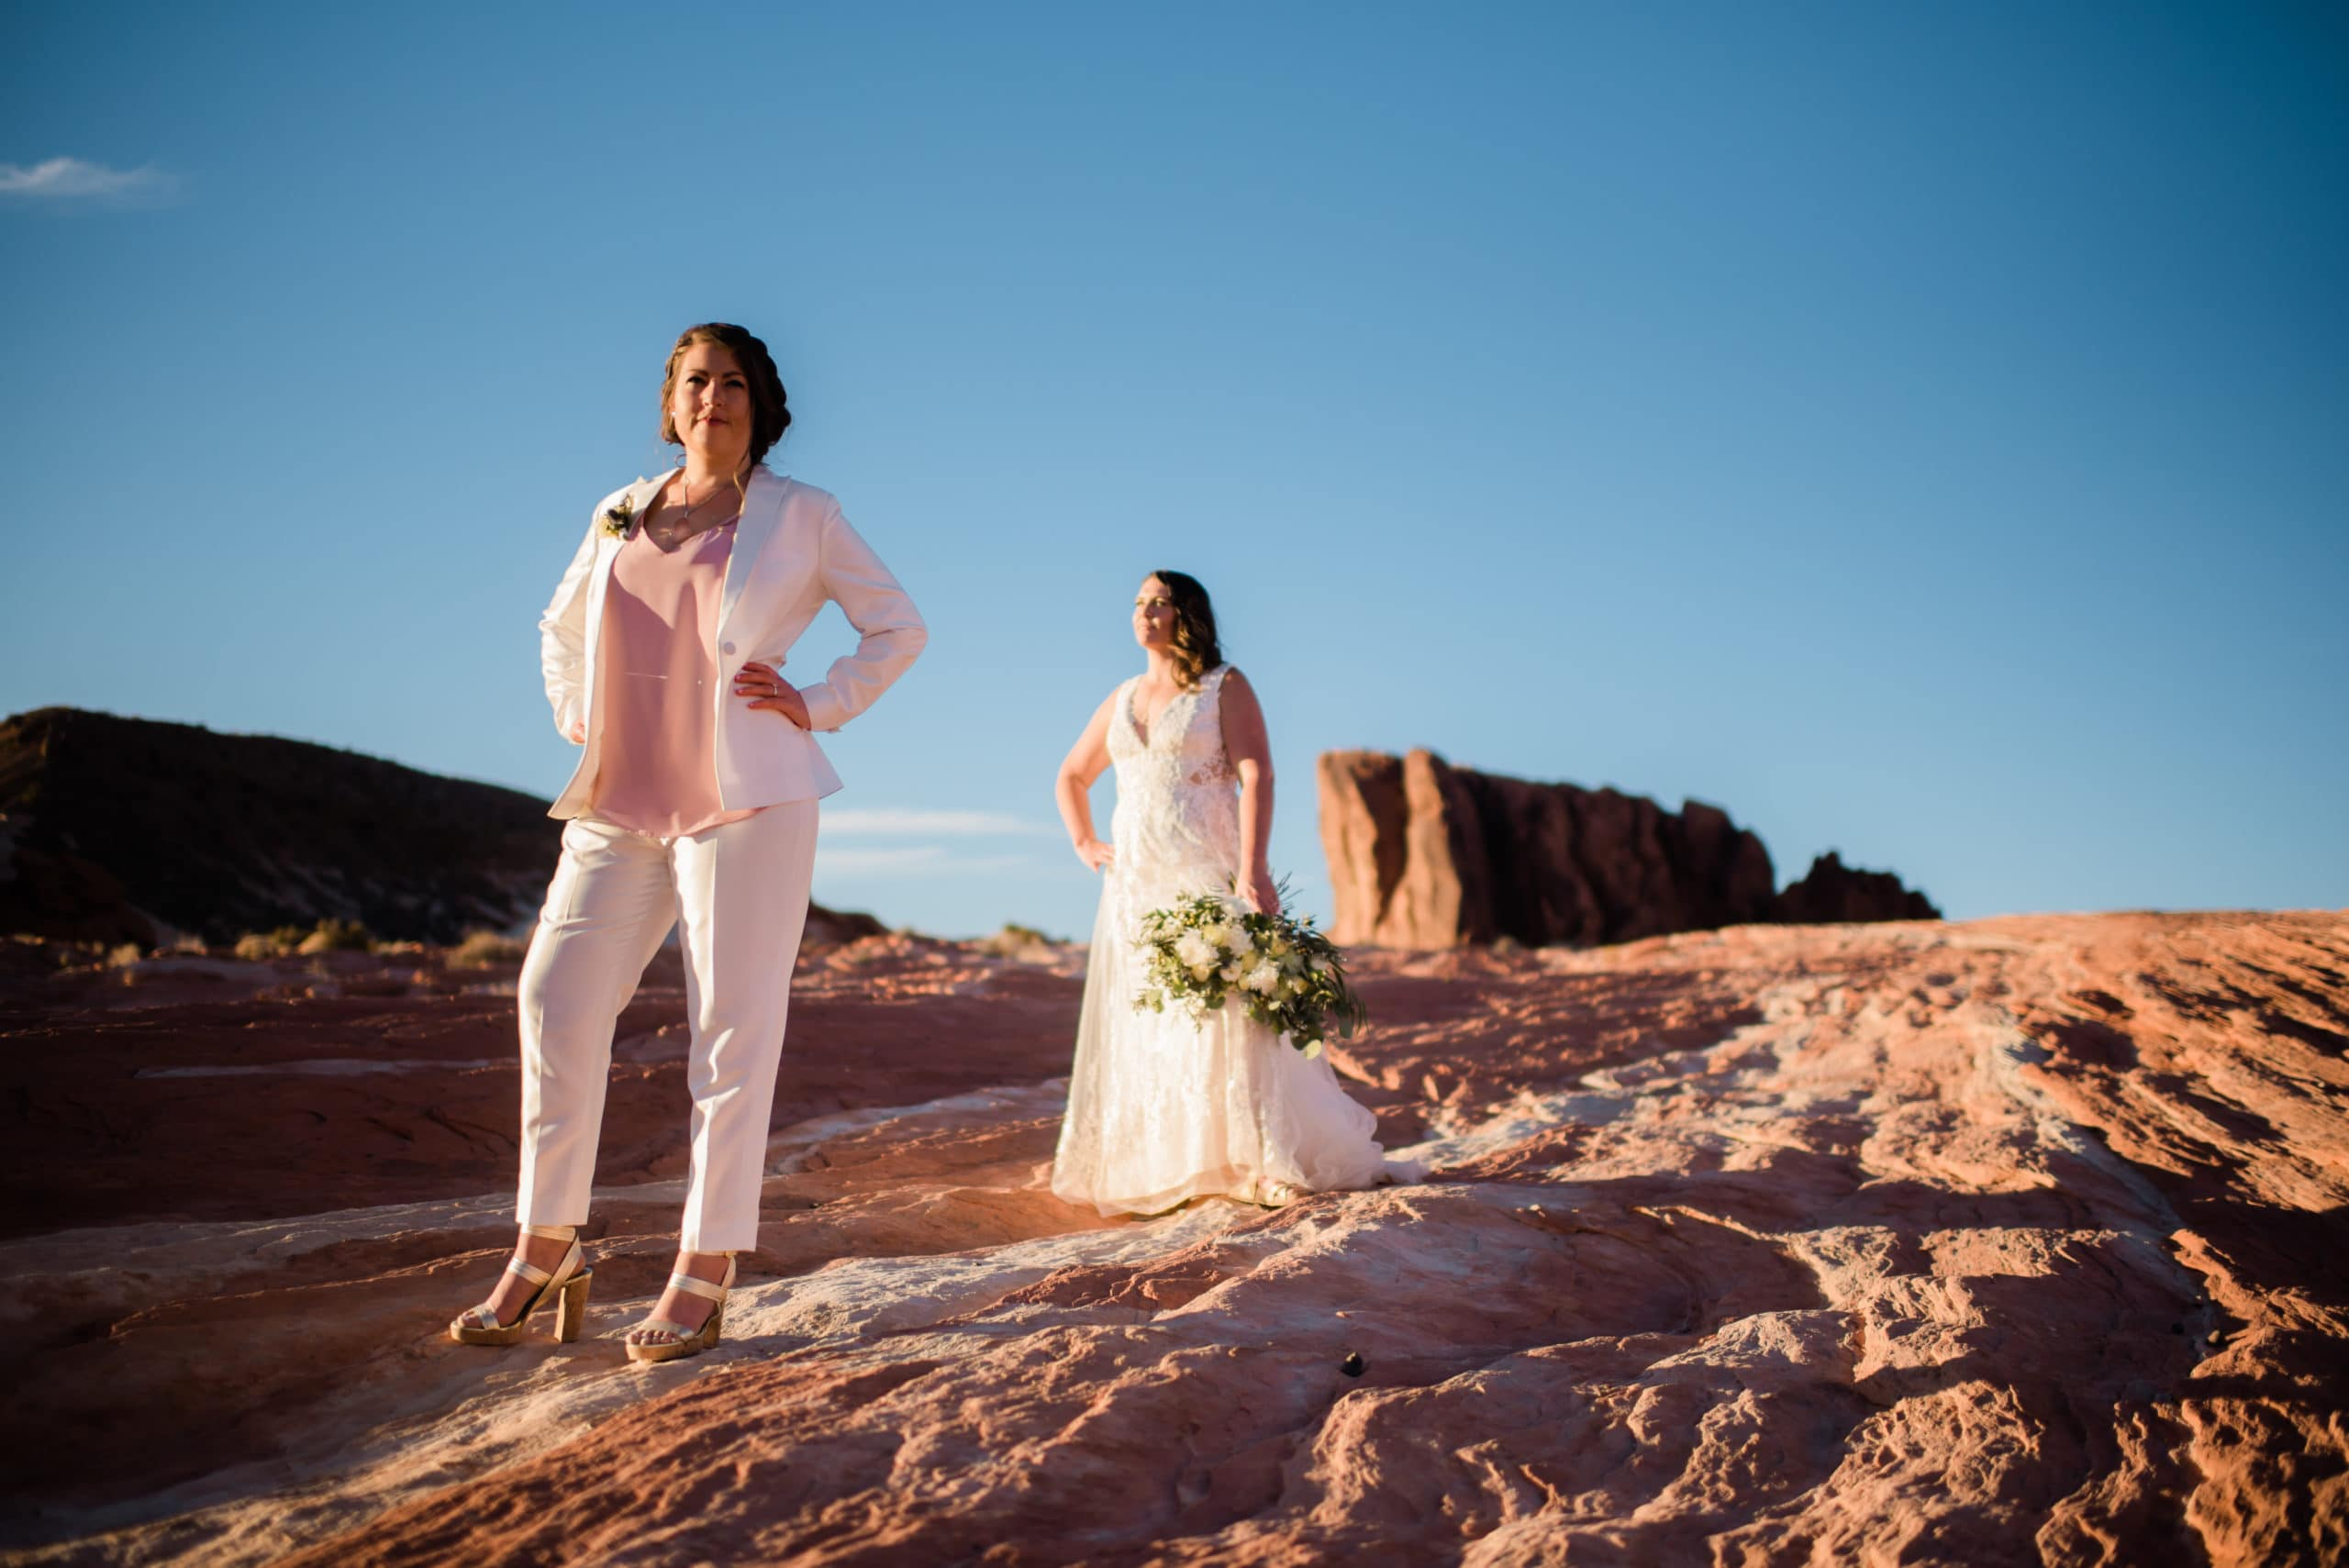 a bride wears a tailored lgbtq+ wedding suit